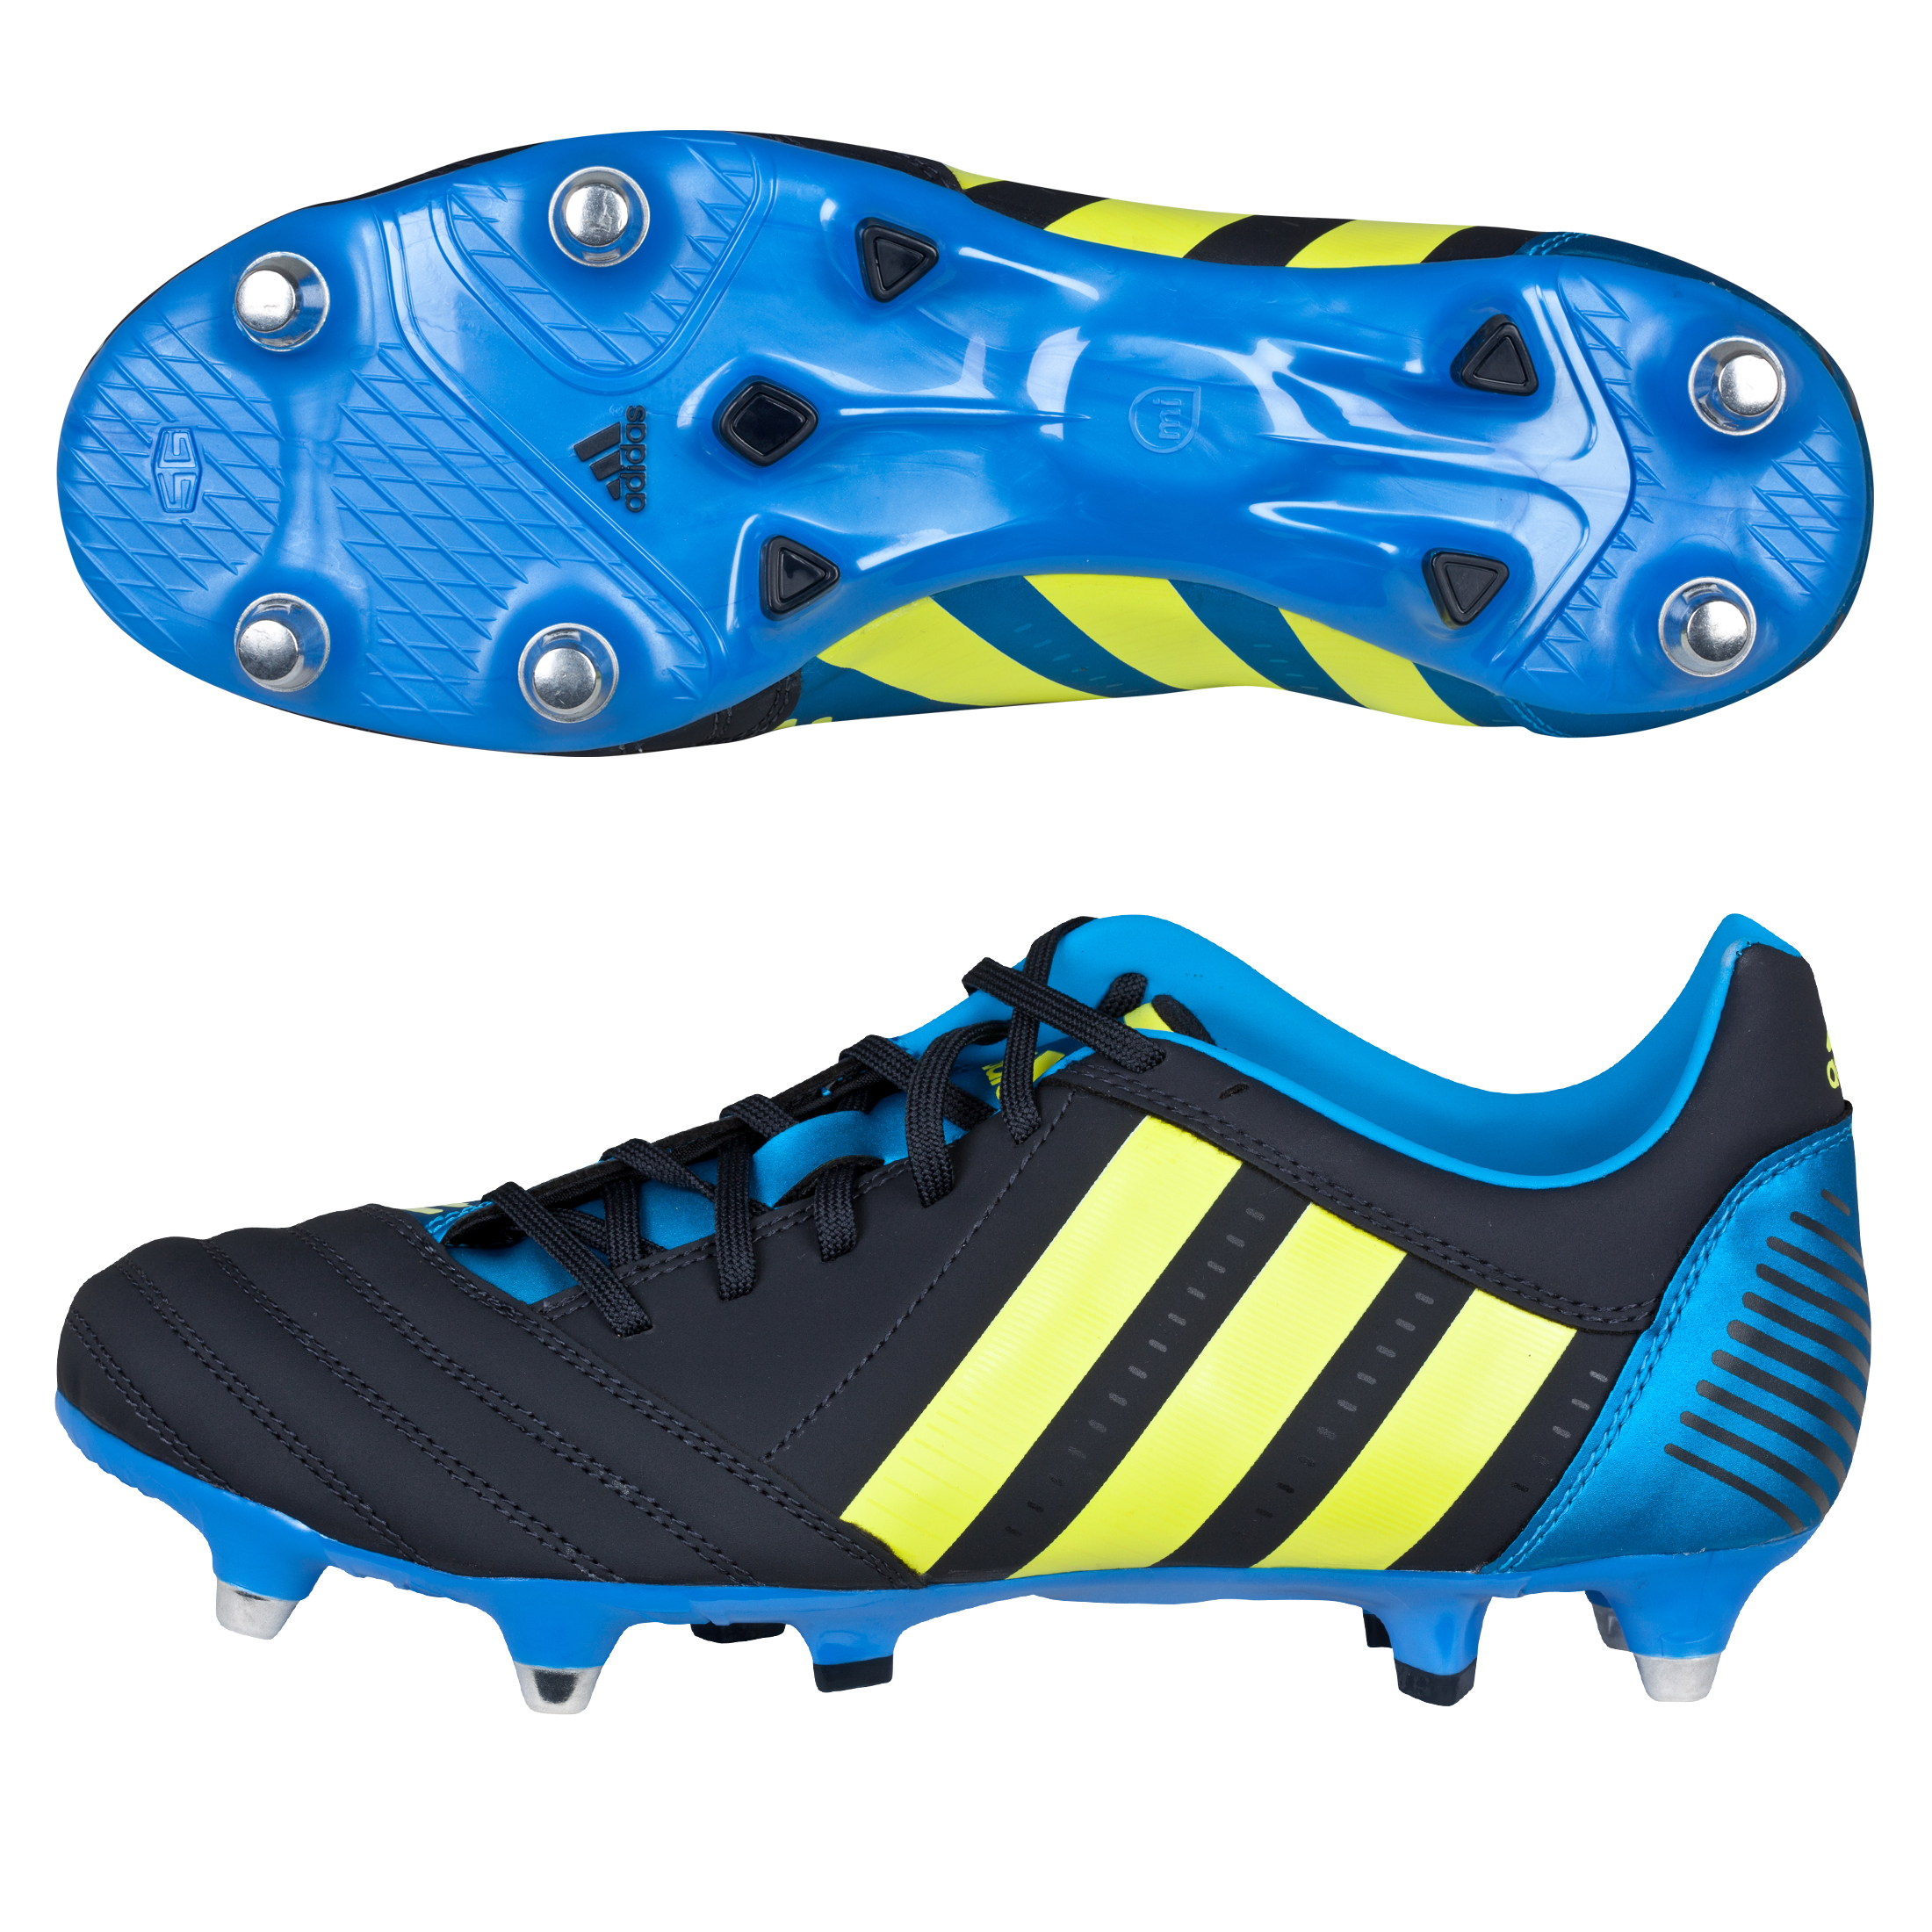 Adidas Absolado RXV TRX Soft Ground Rugby Boots - Punjab/Lab Lime/Bright Blue